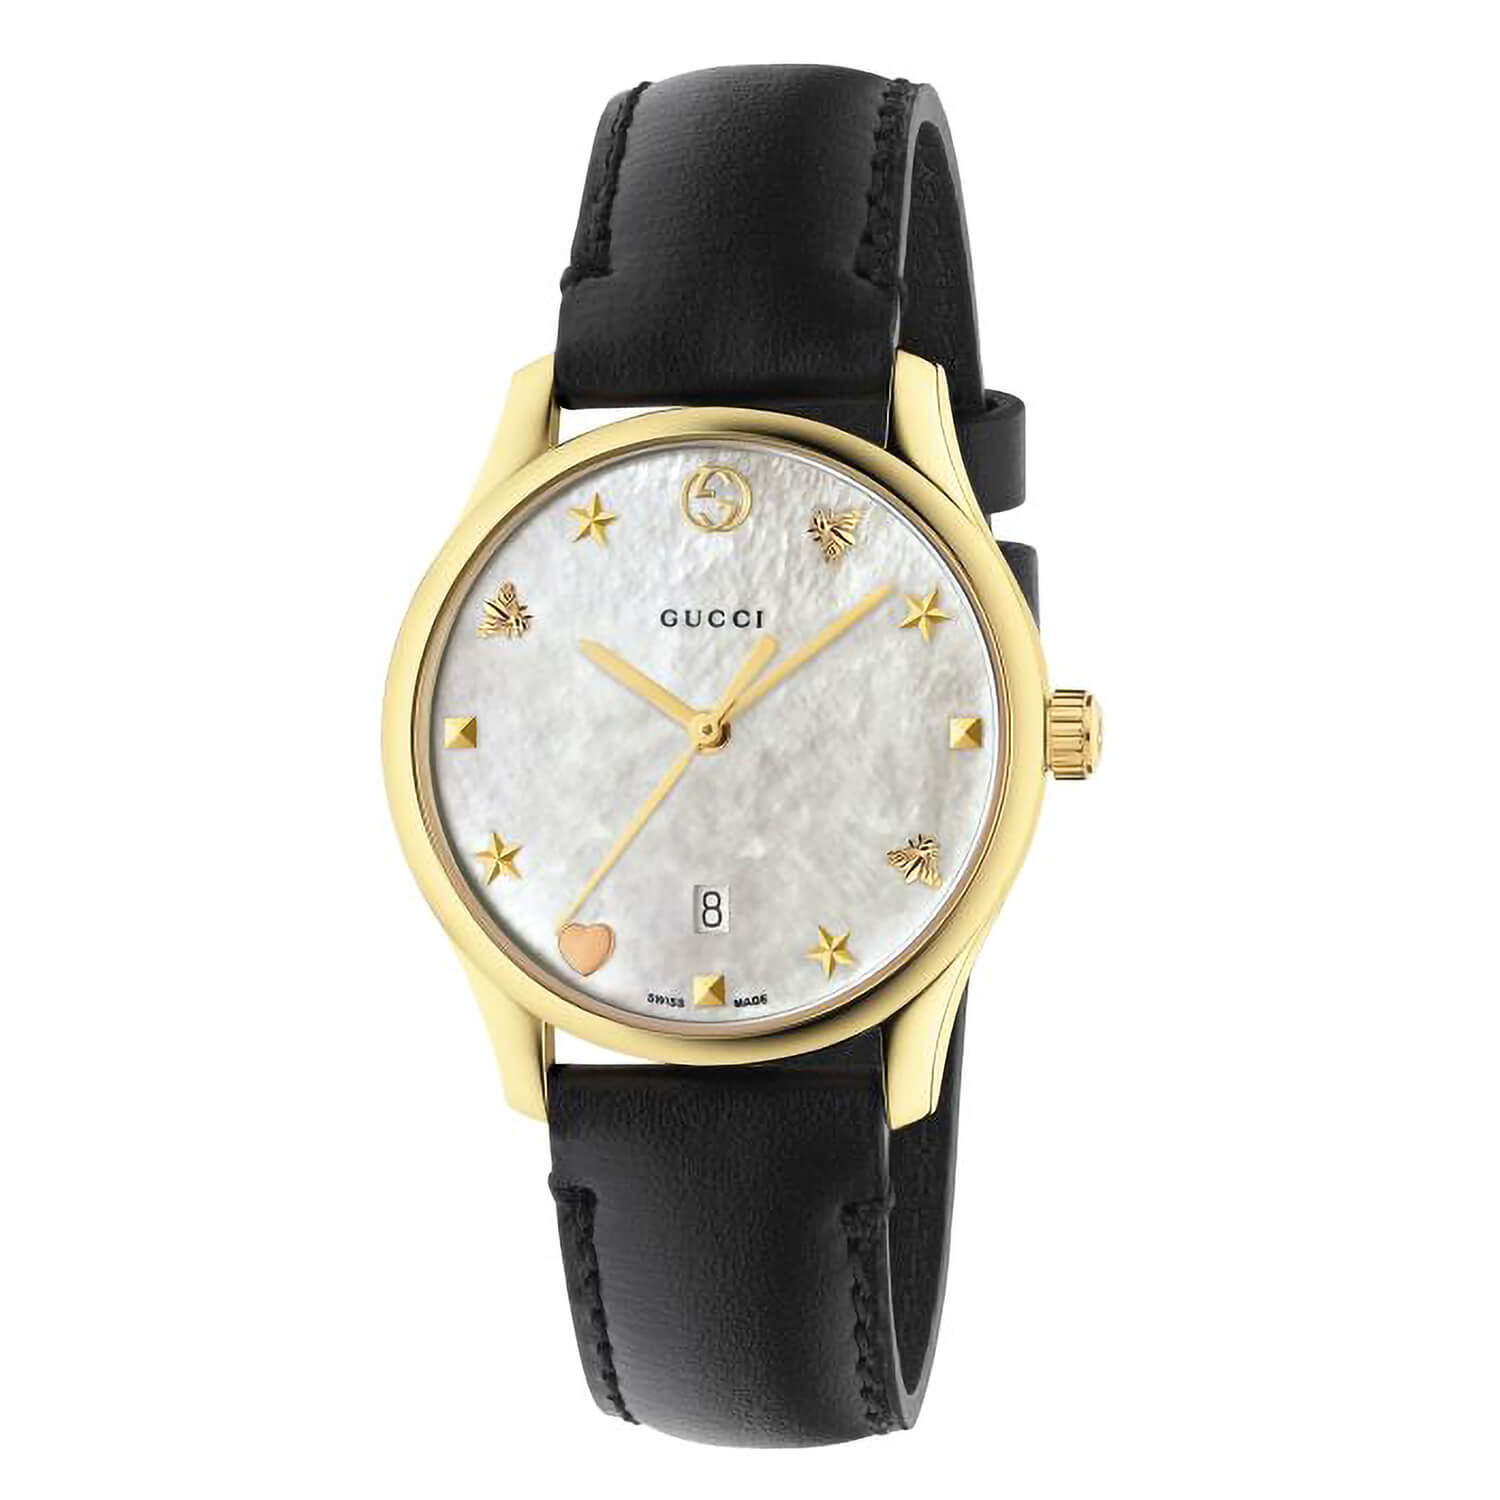 Gucci G-Timeless Pearl Dial Black Calfskin Leather Strap Ladies' Watch